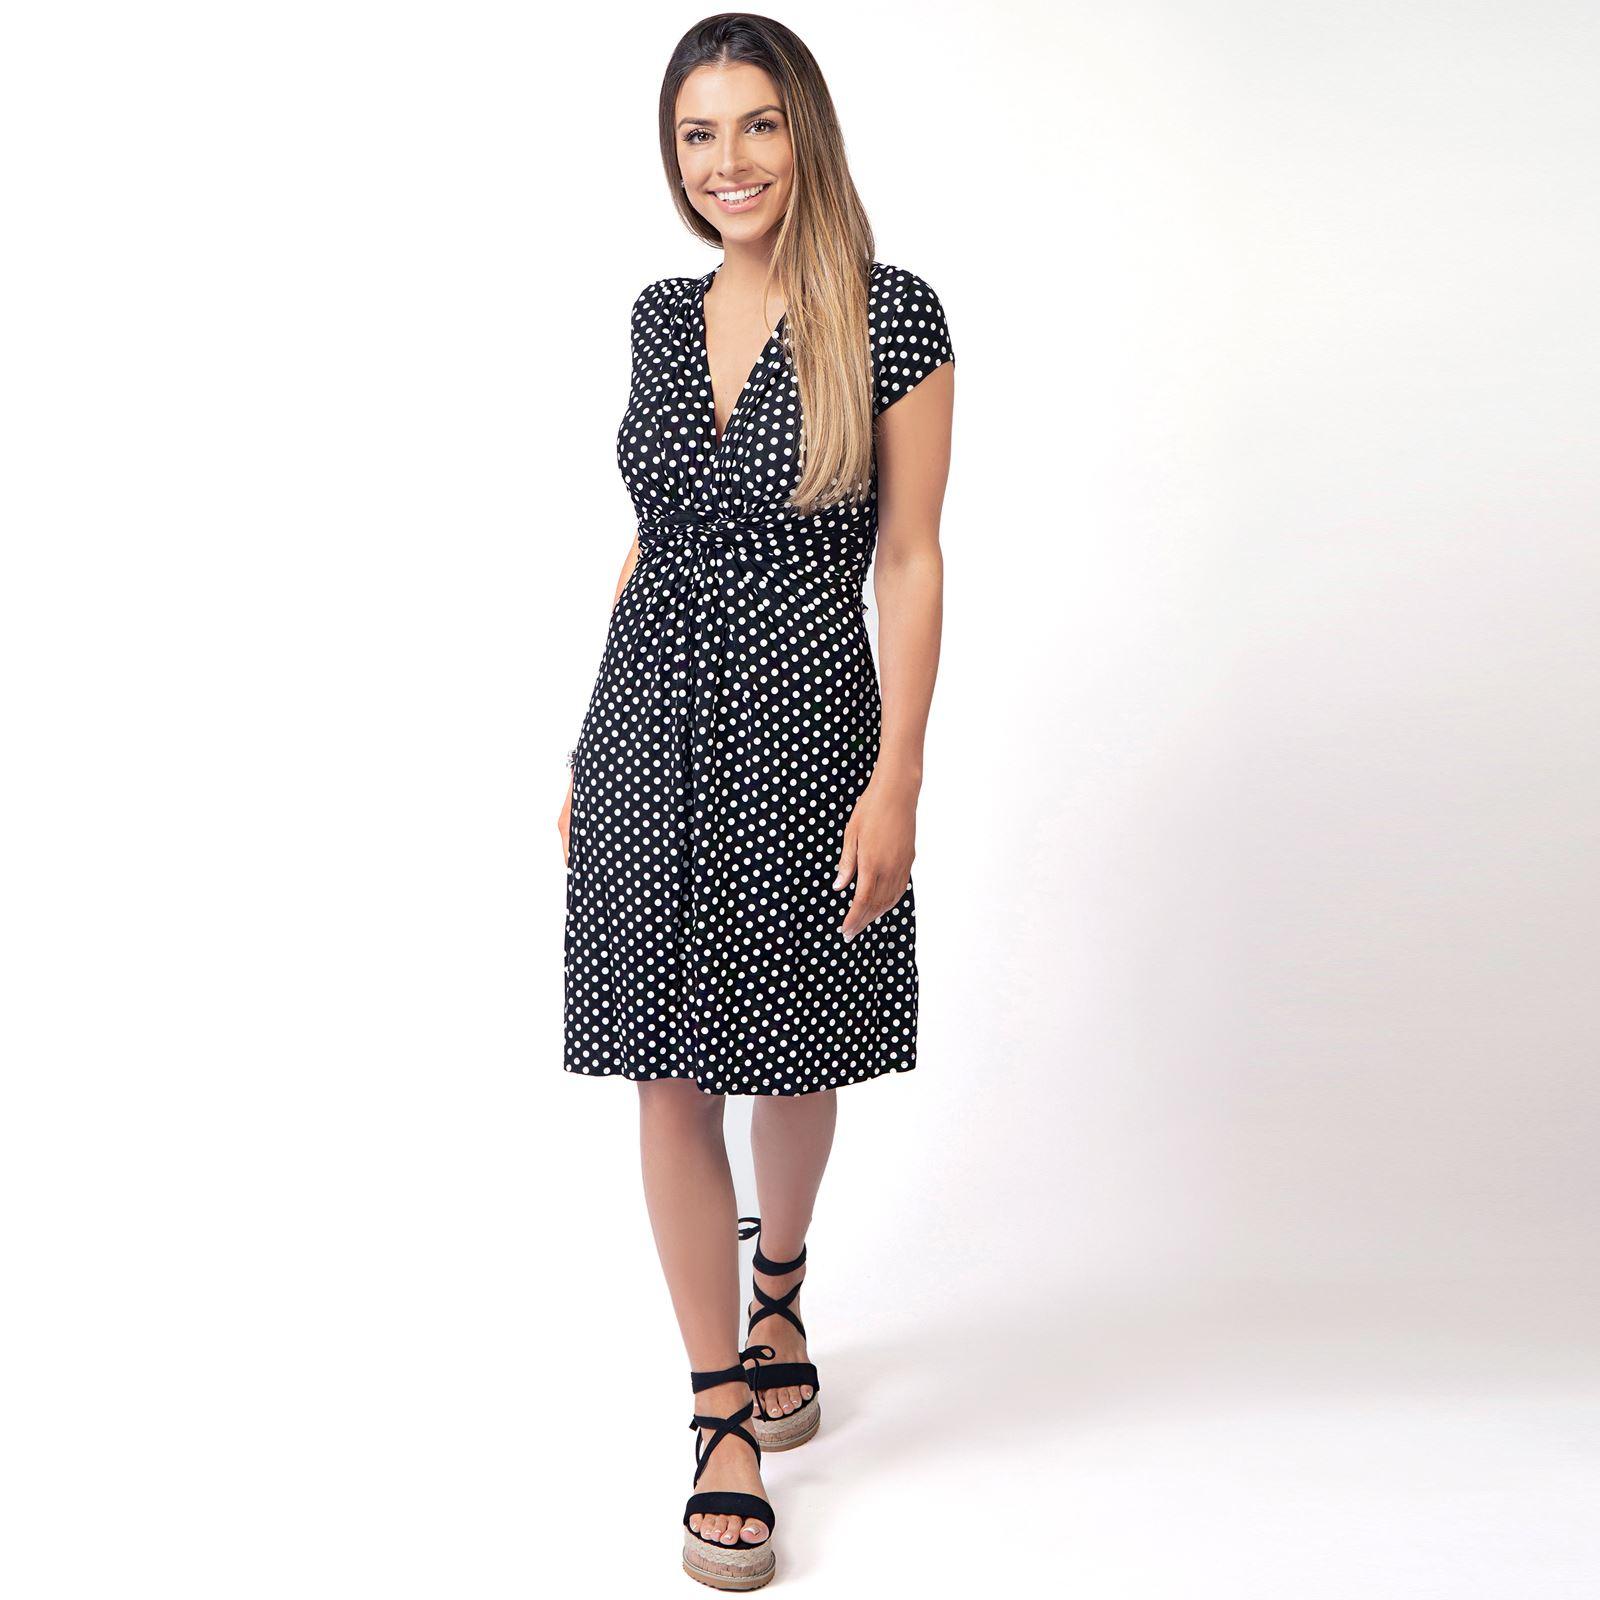 Polka-Dot-Dress-Pleated-Skirt-V-Neck-Mini-Front-Knot-Wrap-Swing-Top-Black-Navy thumbnail 3